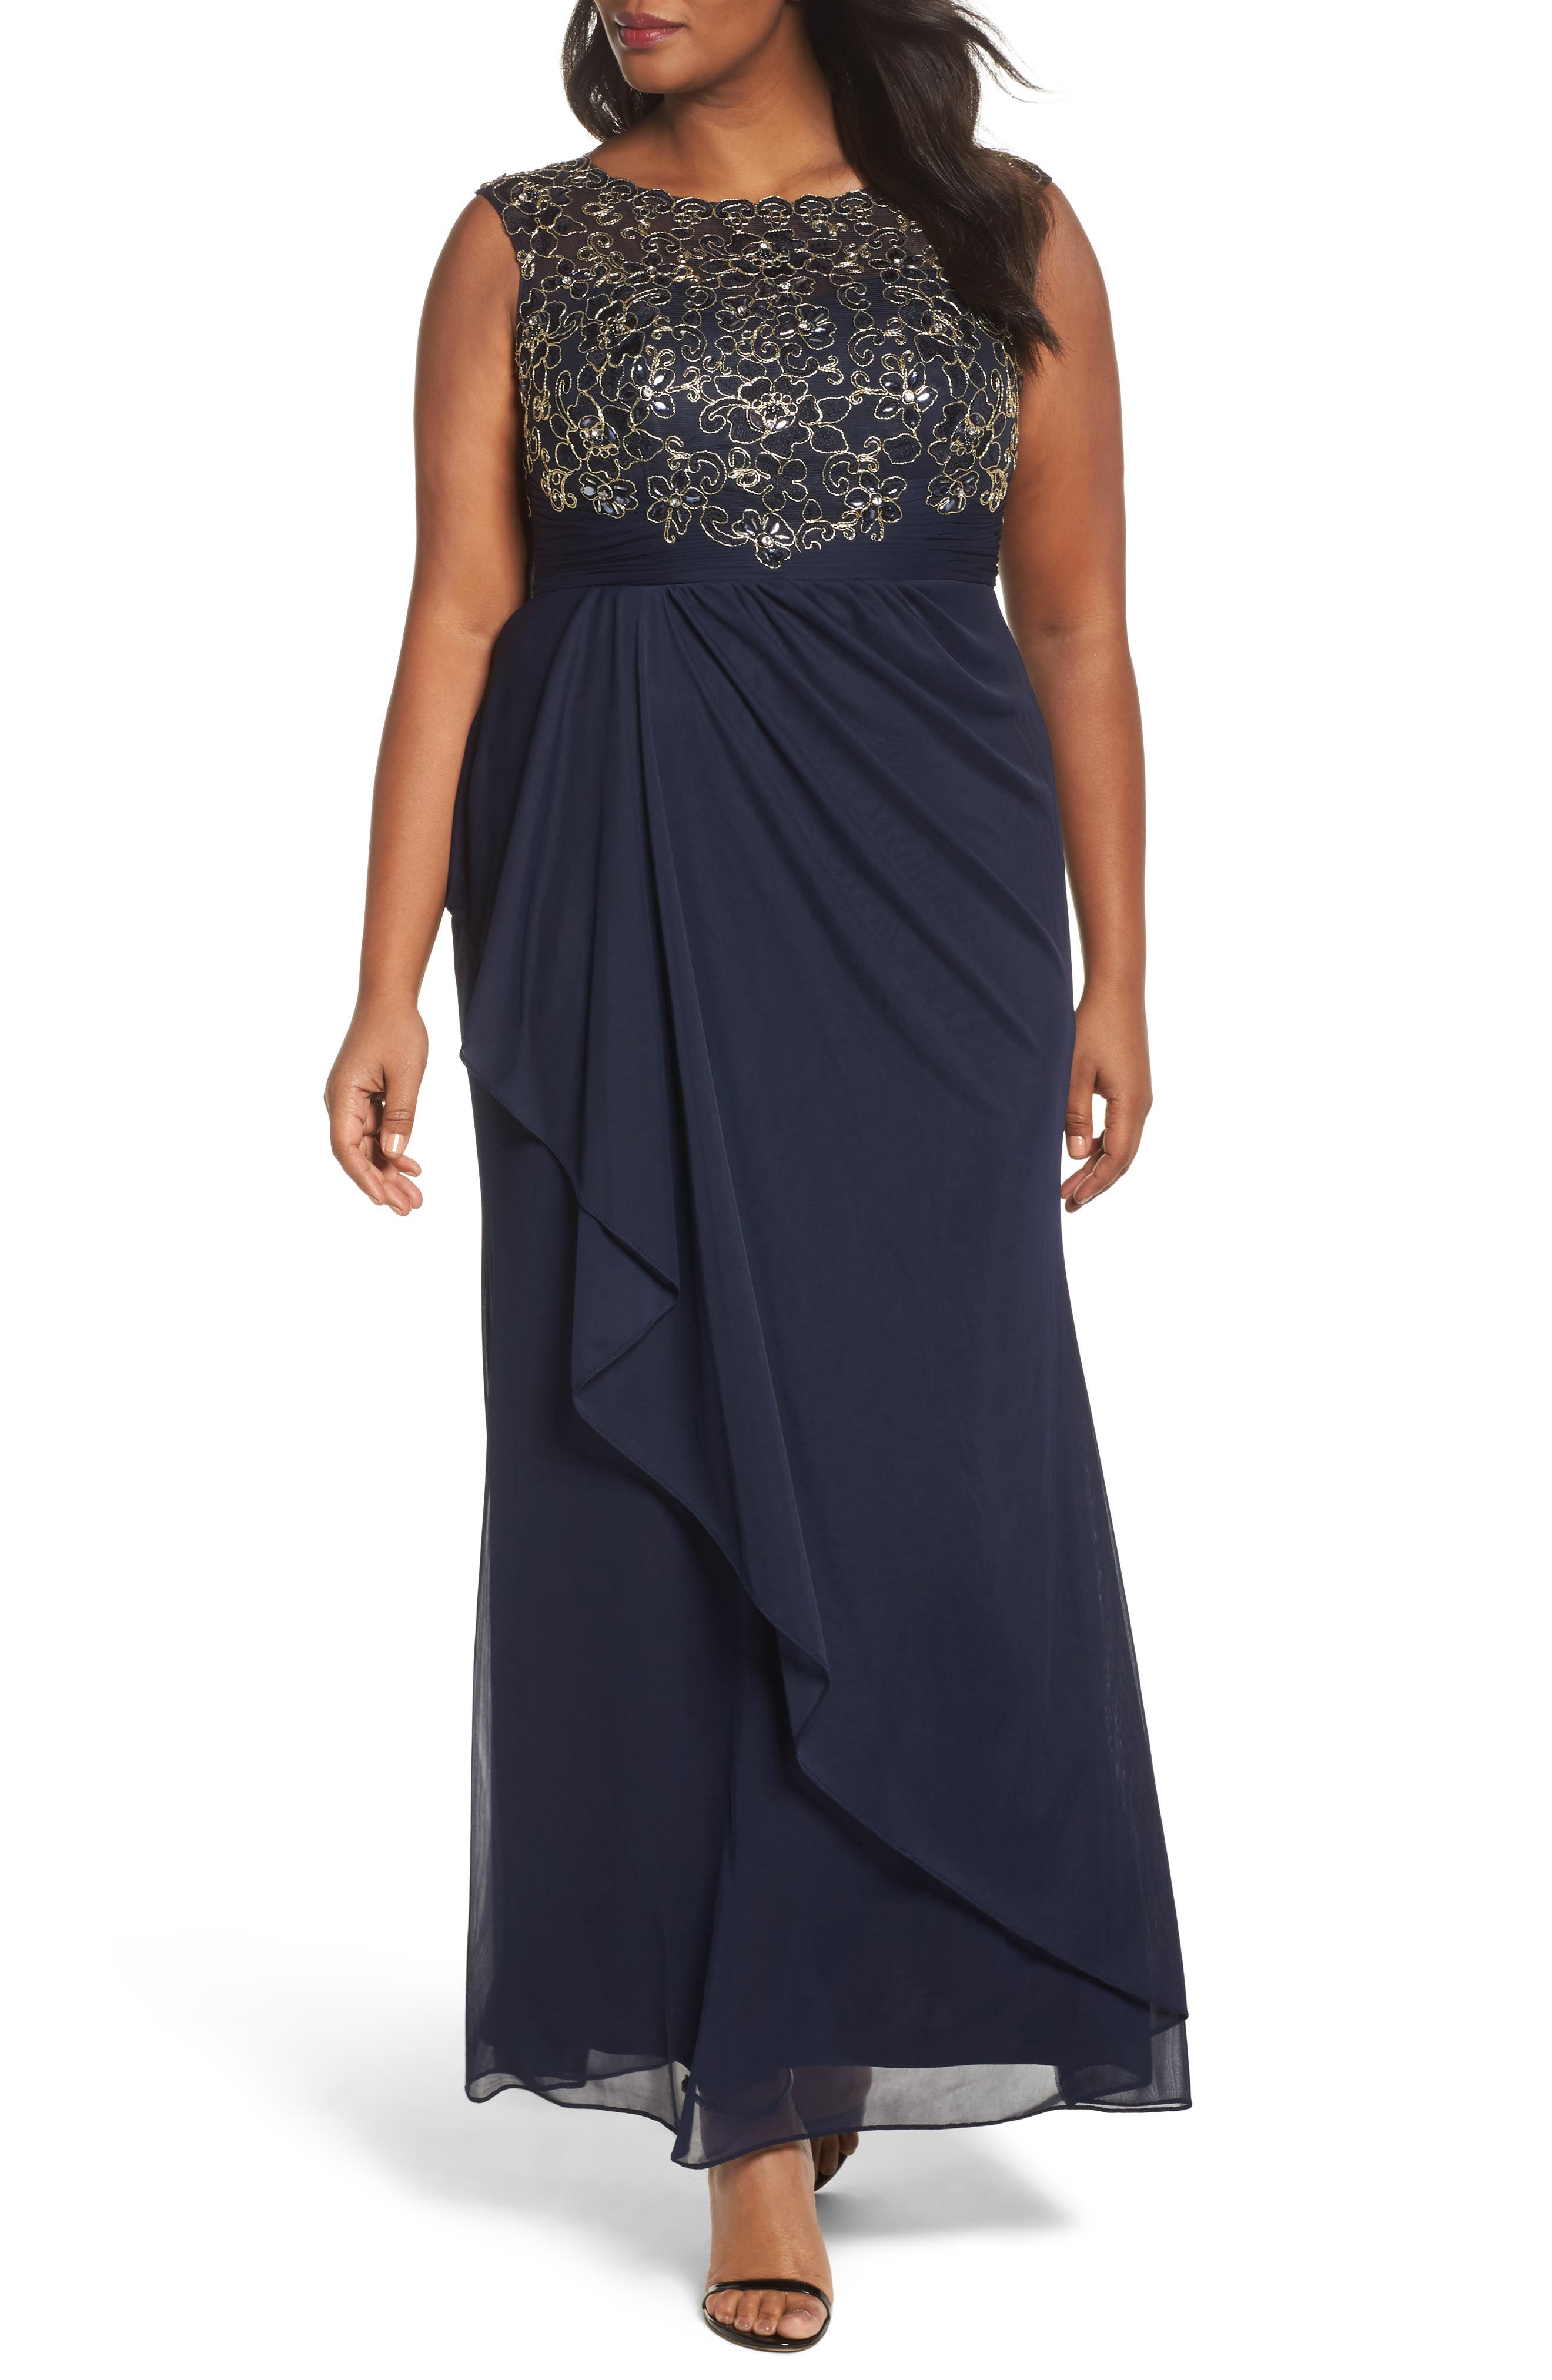 Decode 1.8 Embroidered Cap Sleeve Gown (Plus Size)